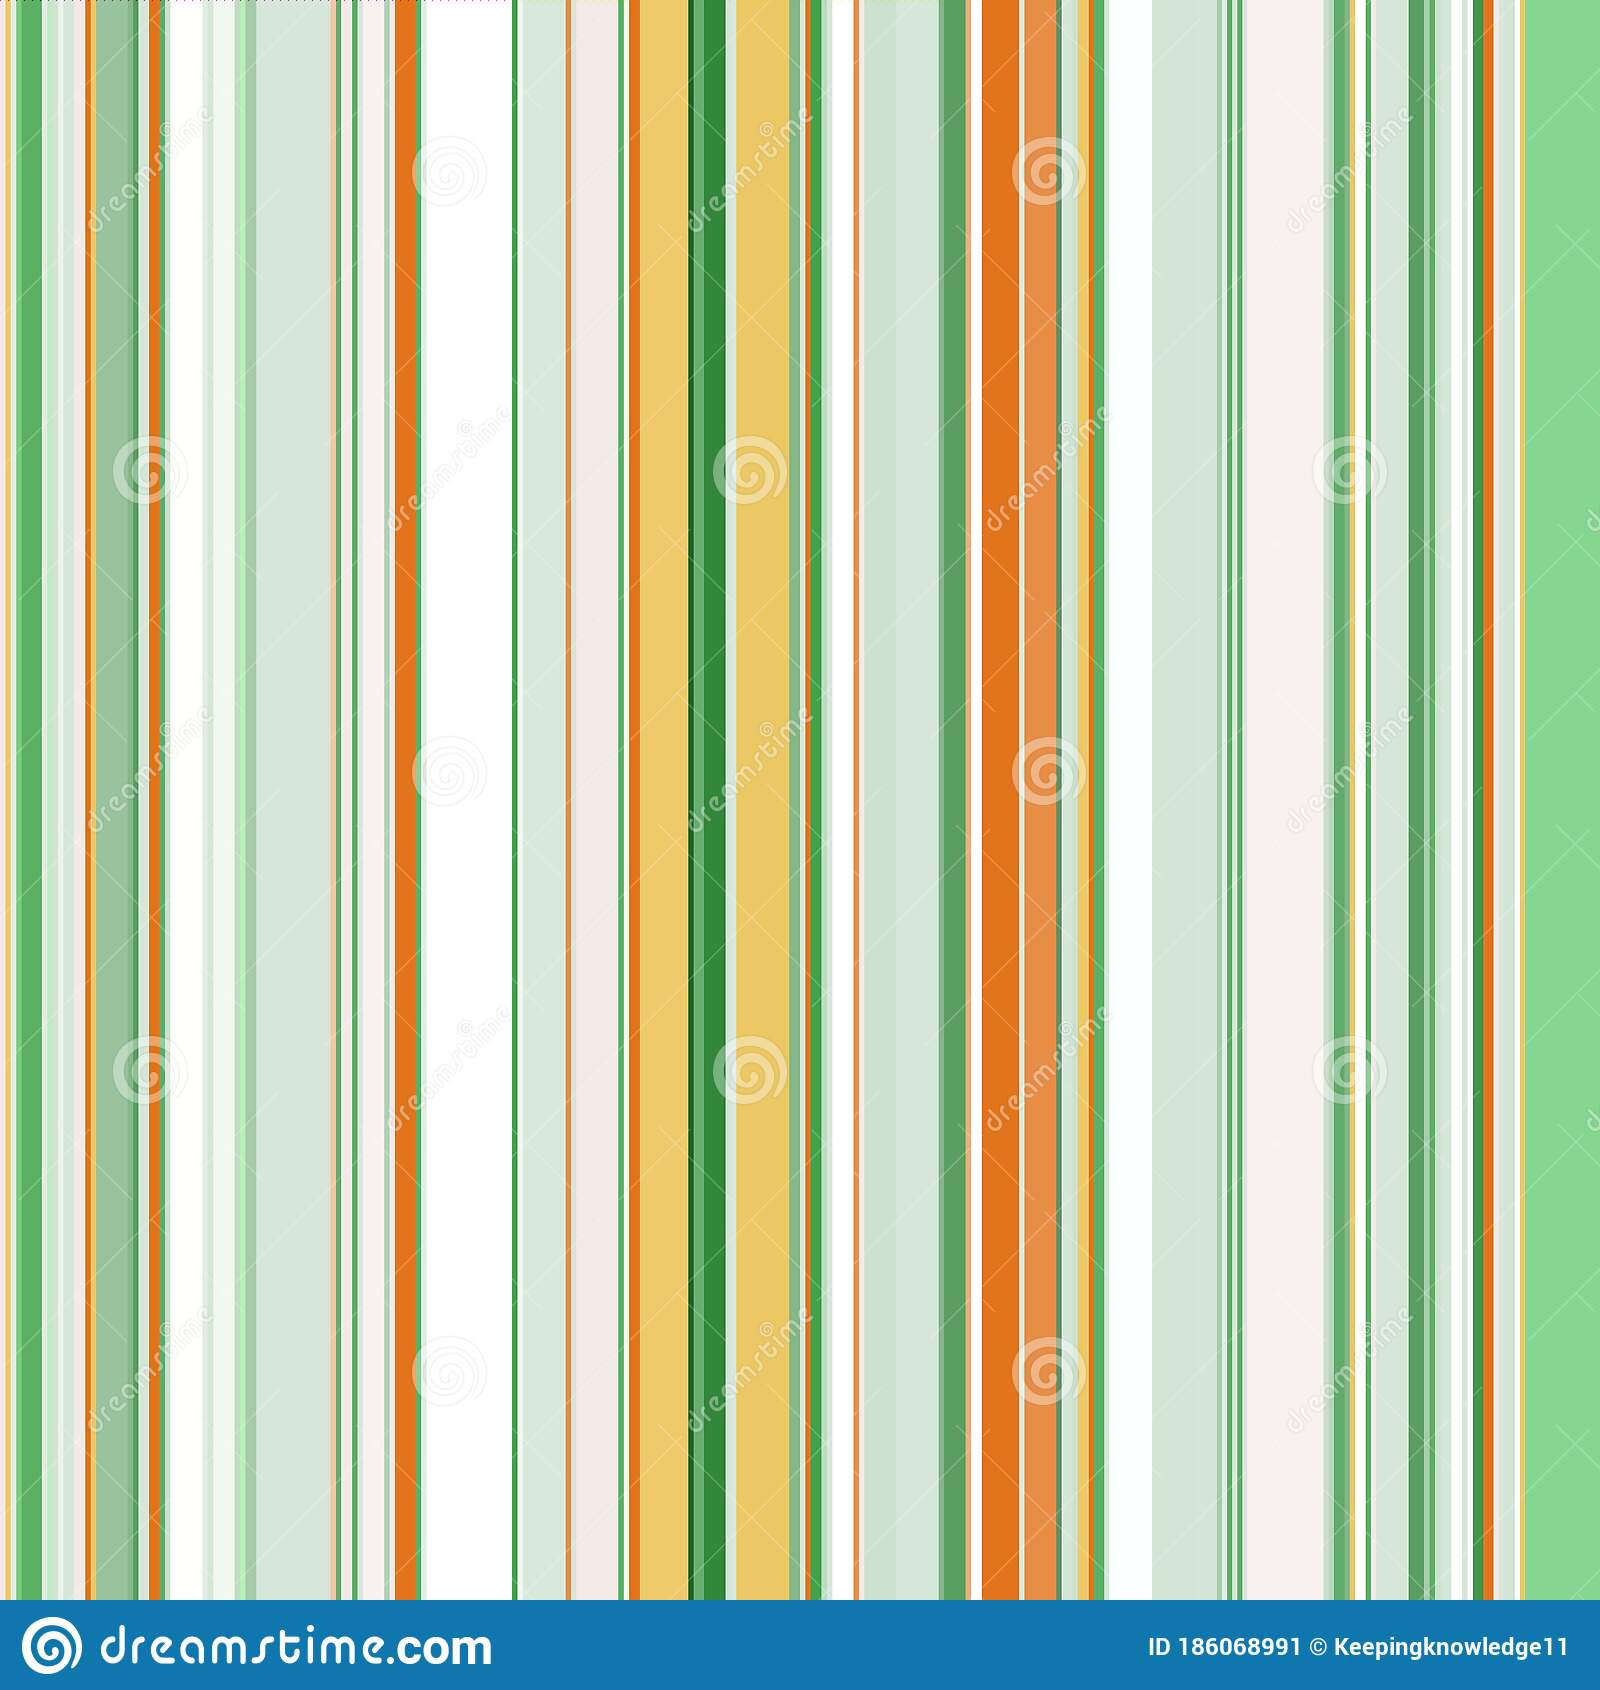 Seamless Geometric Print Of Vertical Stripes Of Different Widths Made In Various Shades Of Green Yellow And Orange Stock Vector Illustration Of Decor Fabric 186068991